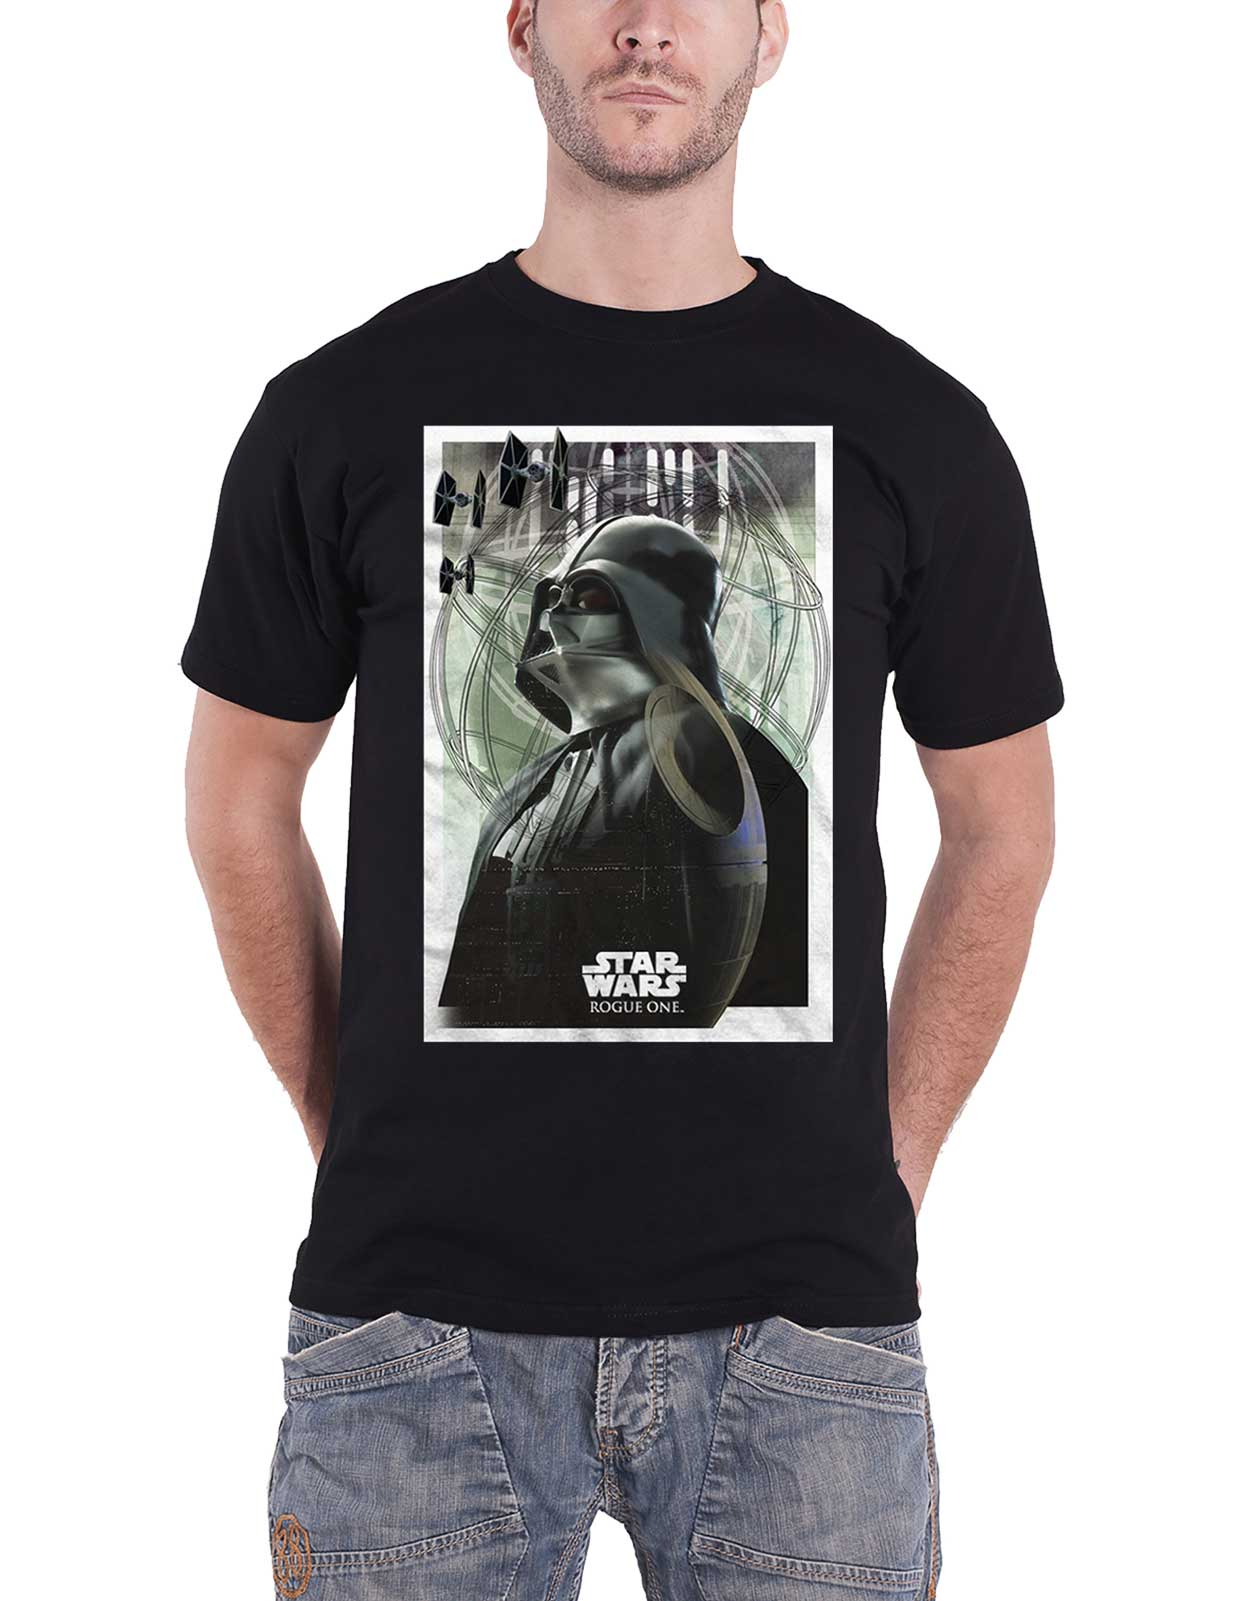 Star-Wars-T-Shirt-Darth-Vader-Prime-Forces-Rogue-One-new-Official-Mens-Black